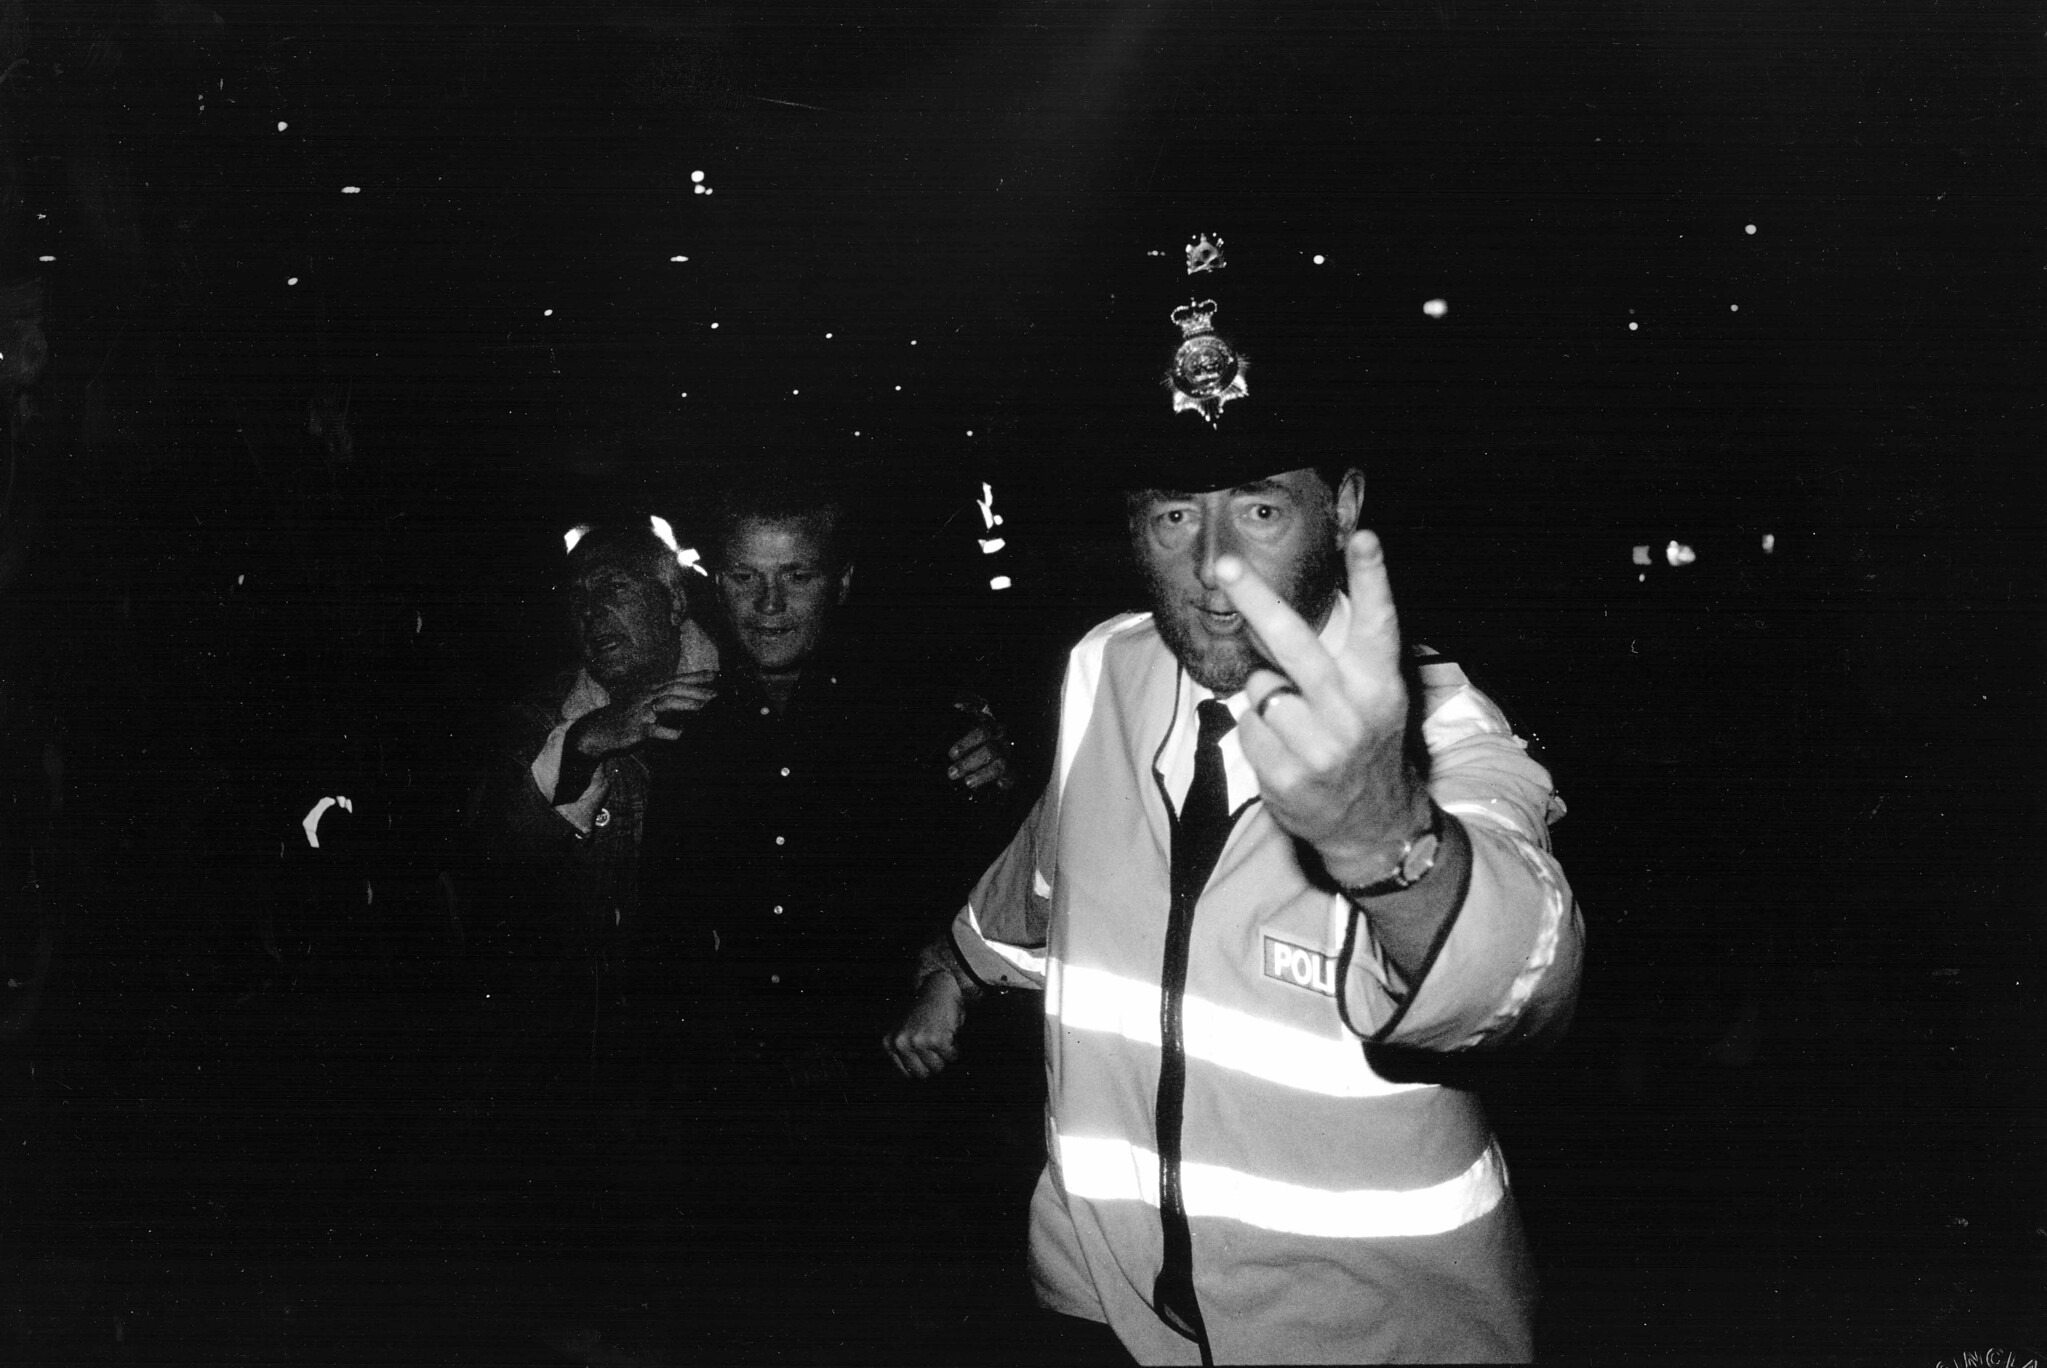 Seaforth early morning arrest, 1996